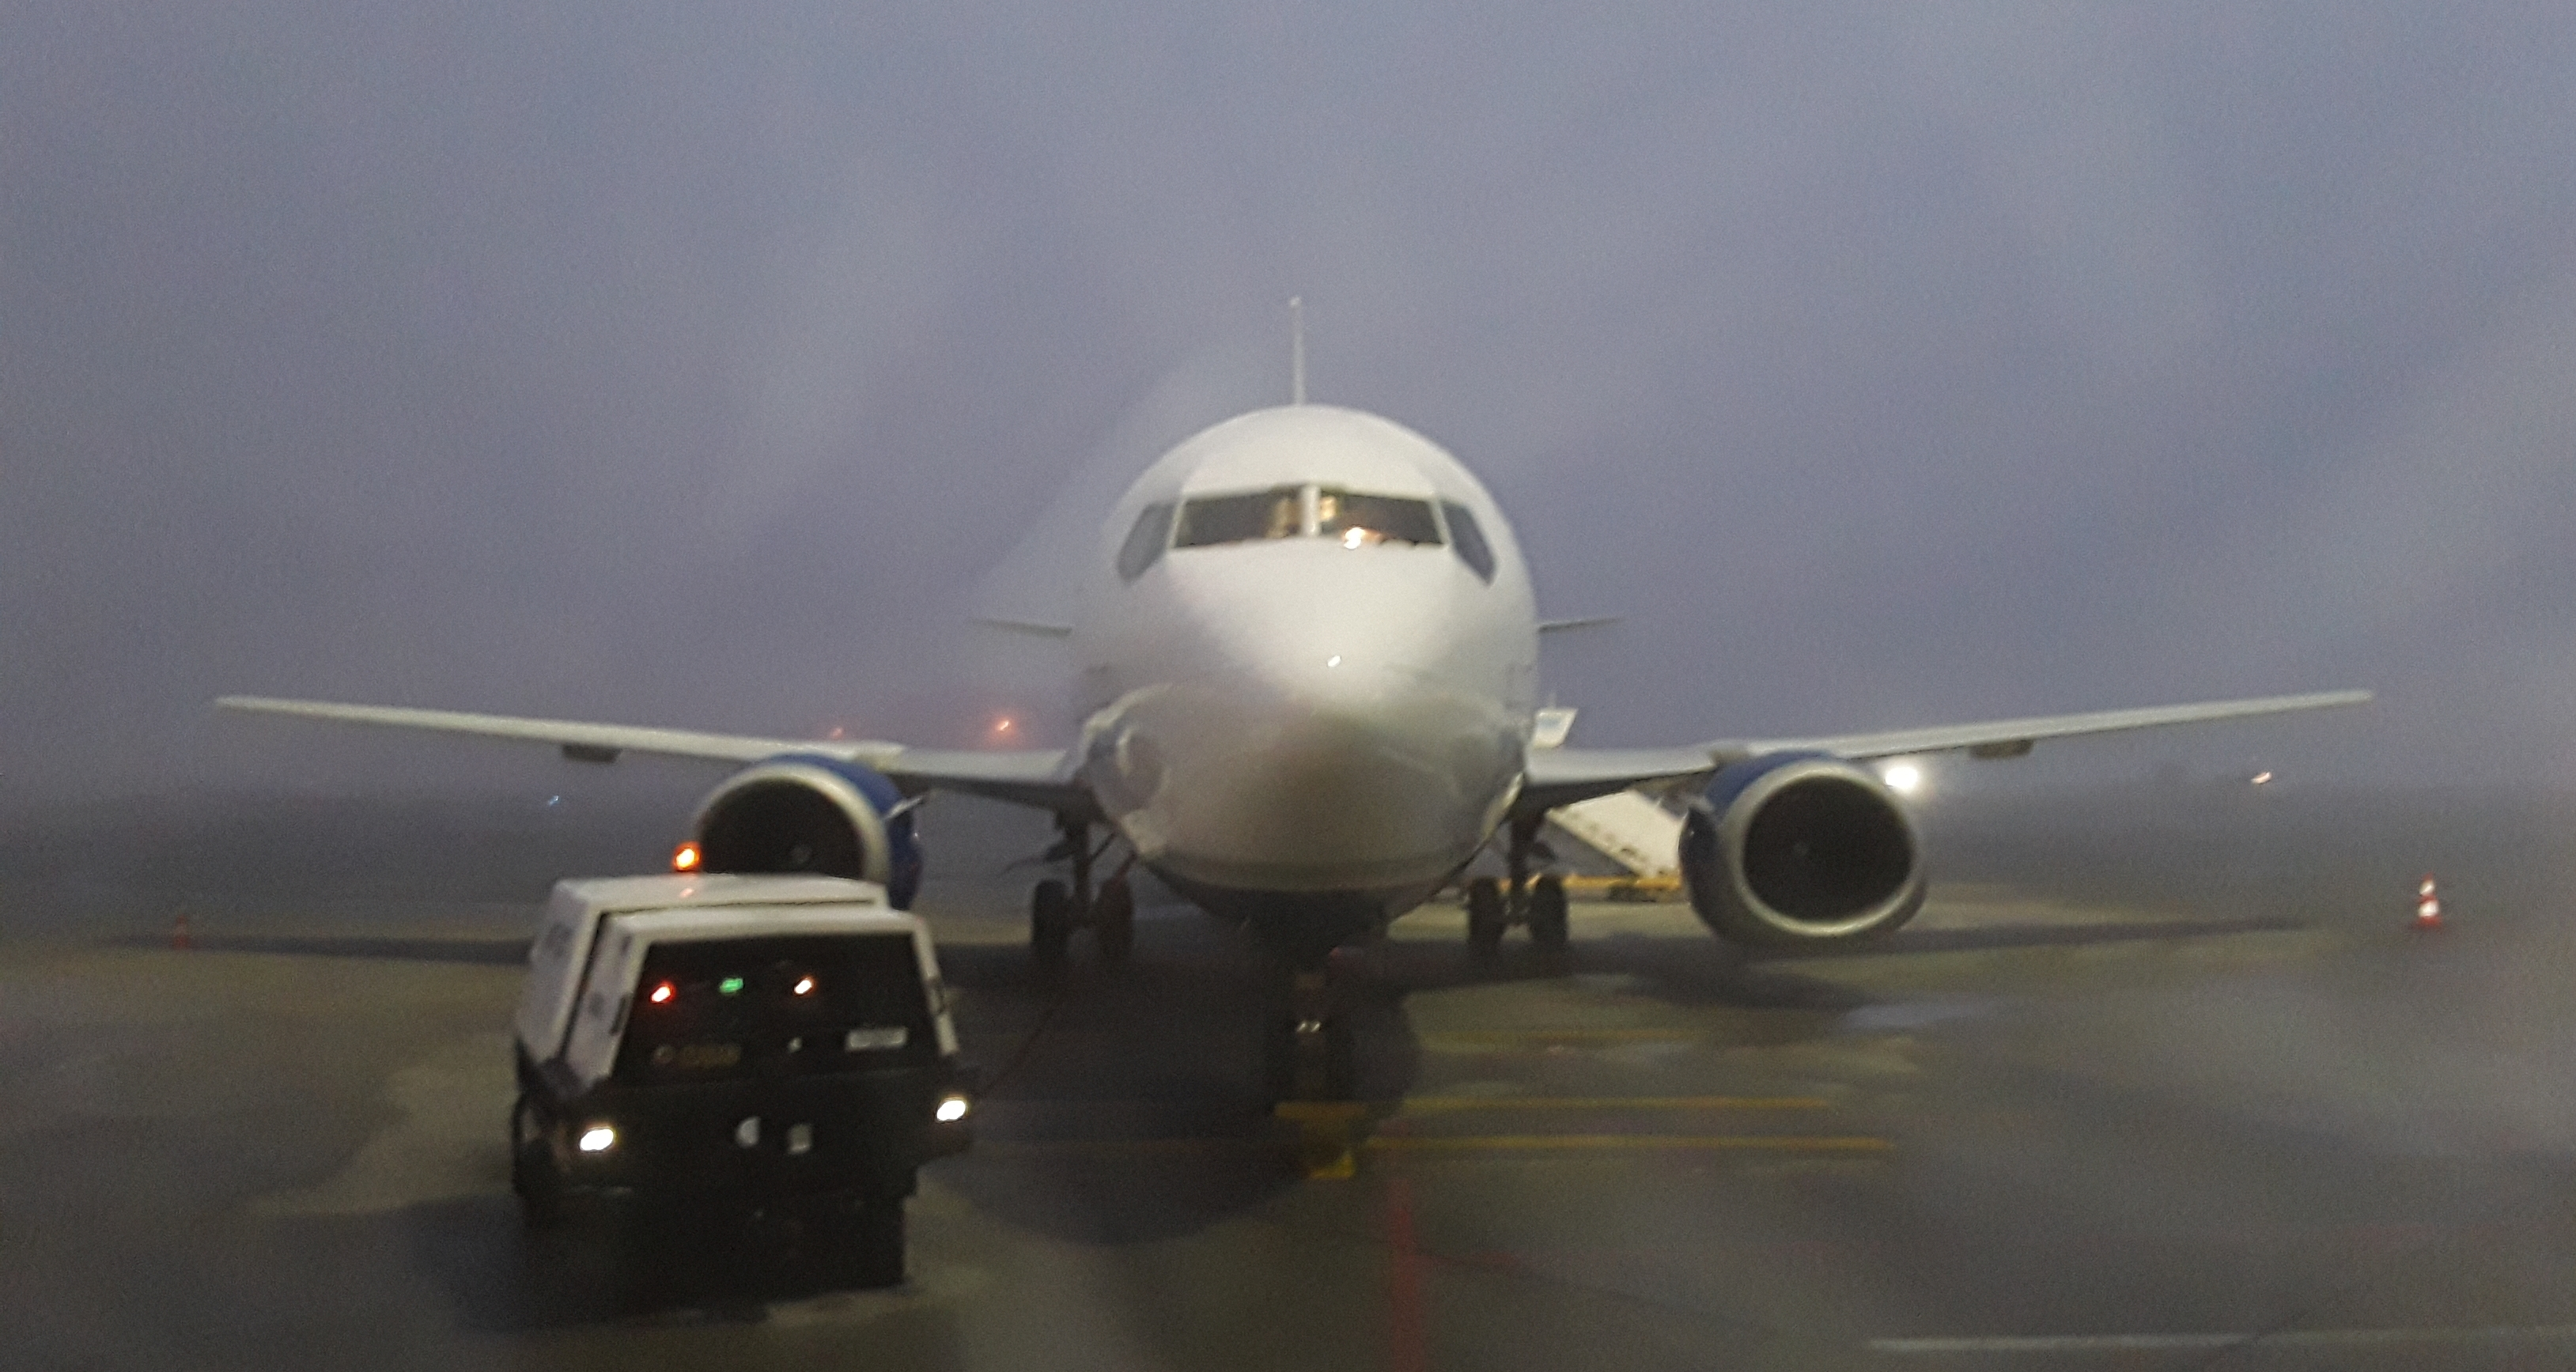 Morning haze on B737 before survey on-site